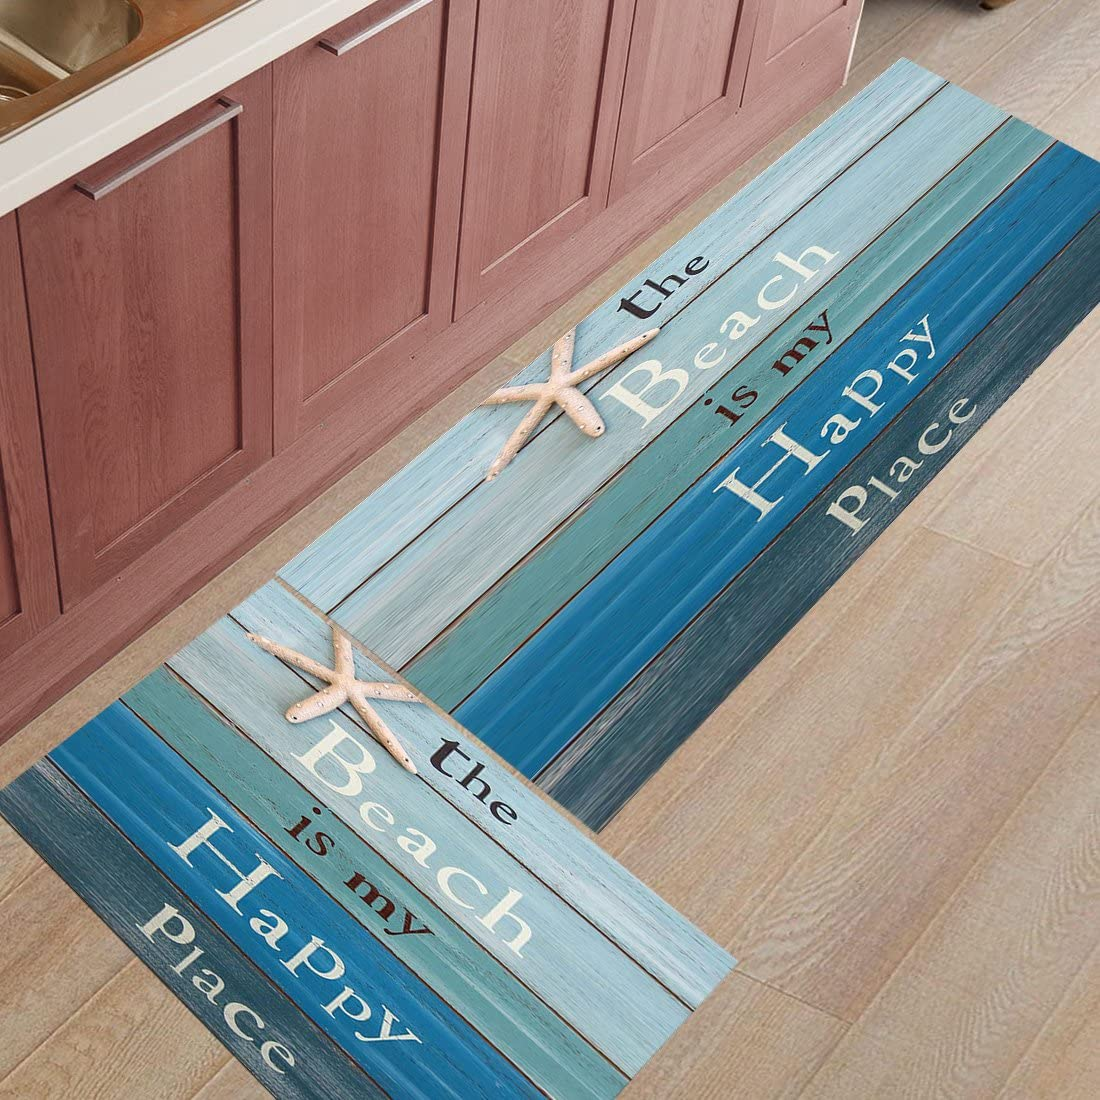 Z/&L Home 2 Pieces Kitchen Rugs and Mats Non Slip Rubber Backing Floor Carpet Accent Area Runner Thin Low Pile Indoor Doormat Set-Navy Blue Nautical Anchor